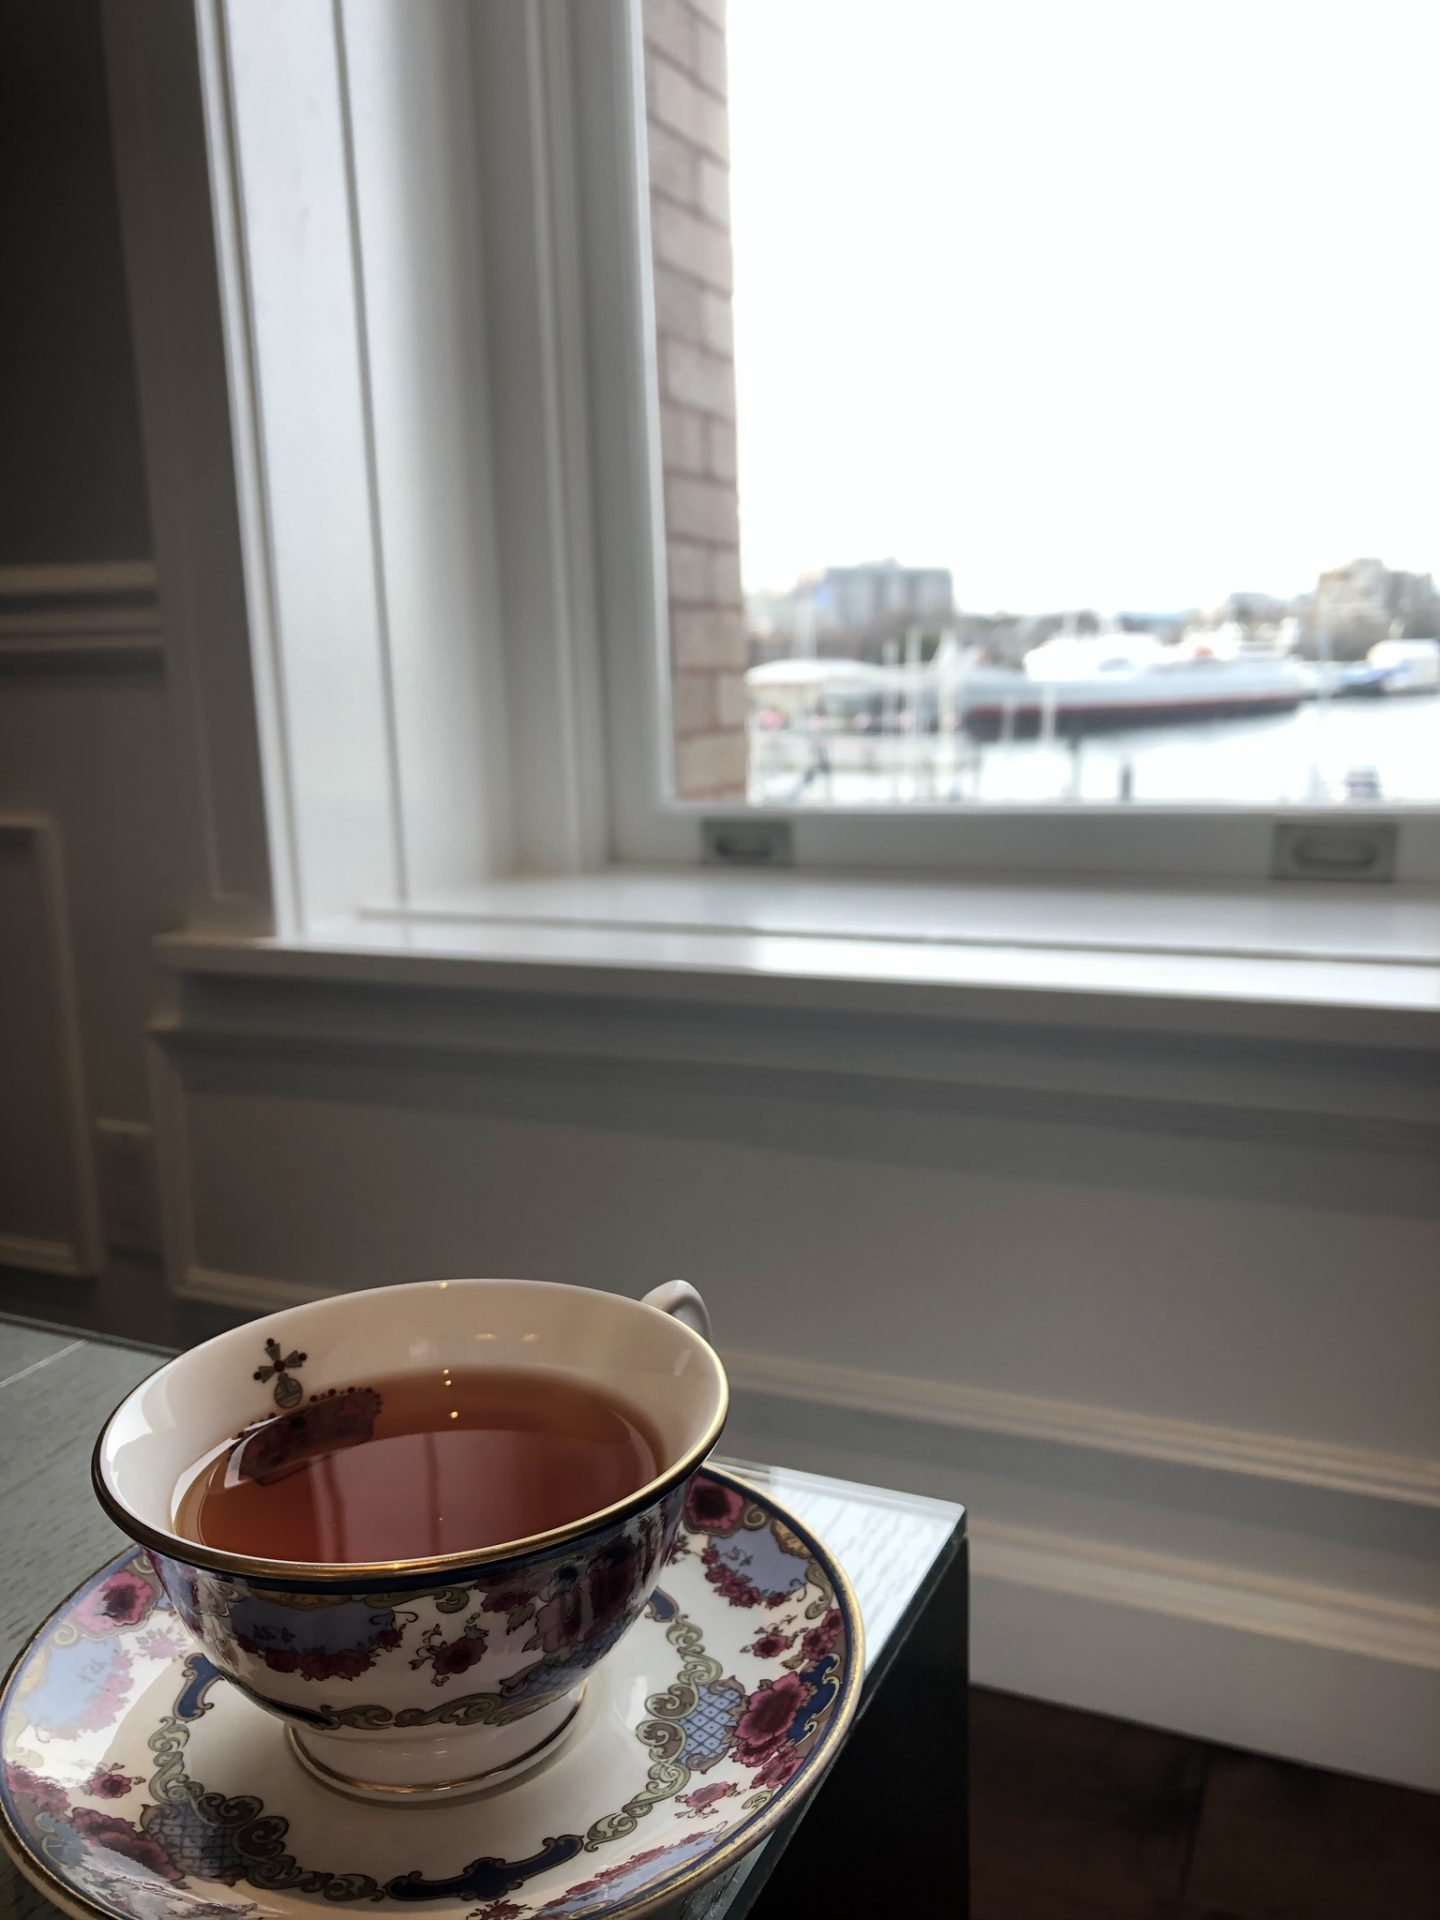 A cup of tea in the Fairmont Empress Gold Lounge, overlooking Victoria Harbour